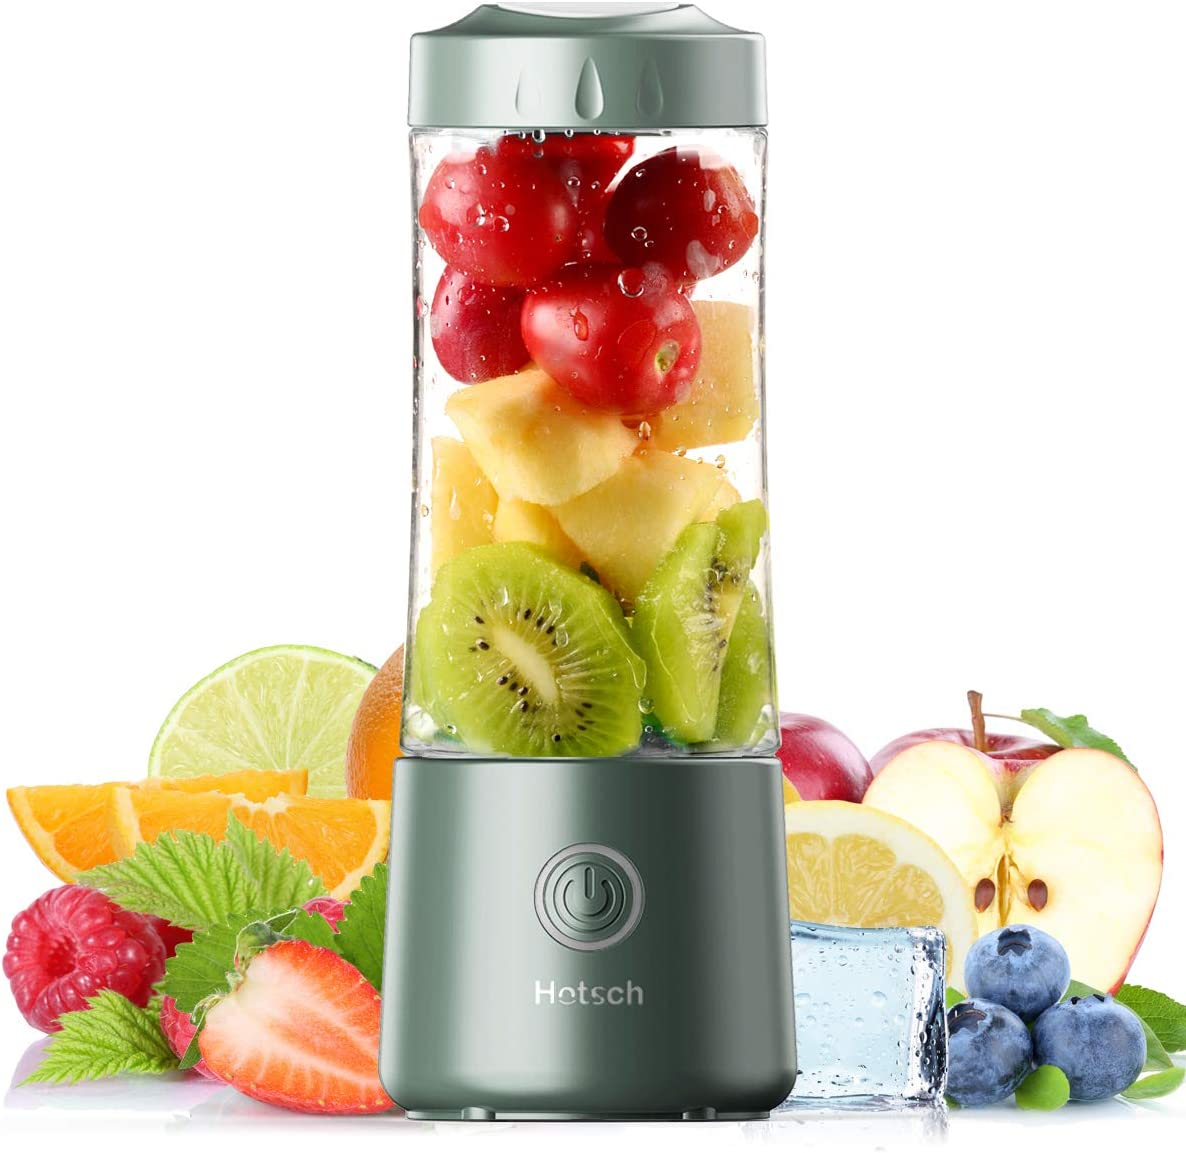 [2021 Newly Upgraded Version]Hotsch Portable Blender, 13.5 Oz Personal Size Blender, Juicer Cup for Juice, Crushed Ice, Smoothies and Shakes, 4000mAh USB Rechargeable with Six Blades, Mini Blender for Sports, Office, Travel, Gym, and Outdoors(Green)